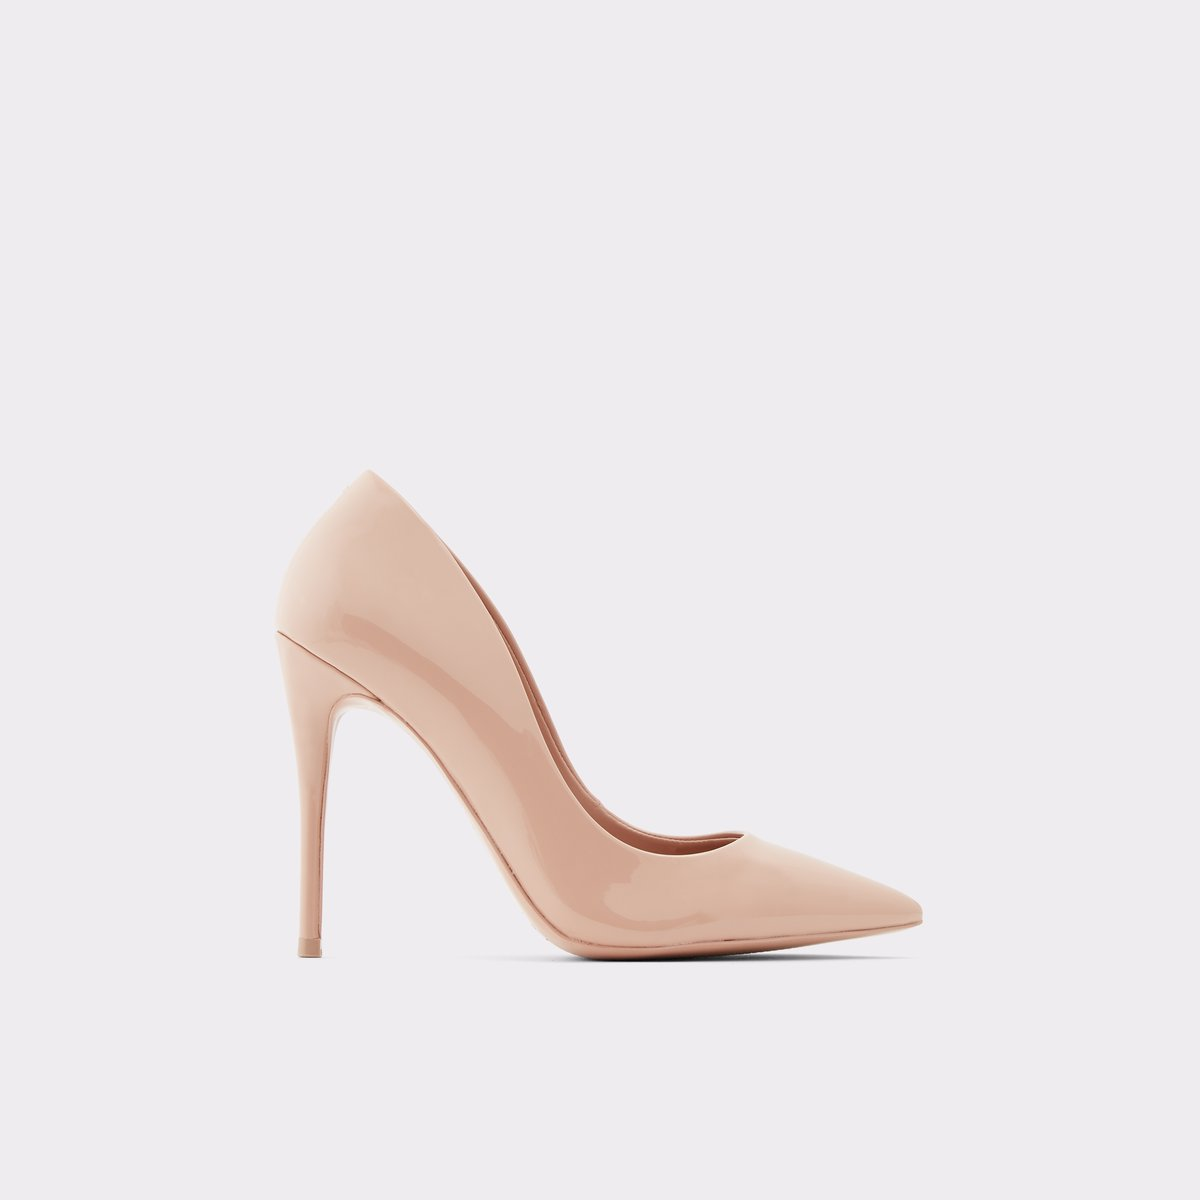 ccd8f7d76ba Stessy  Light Pink Women s Pumps